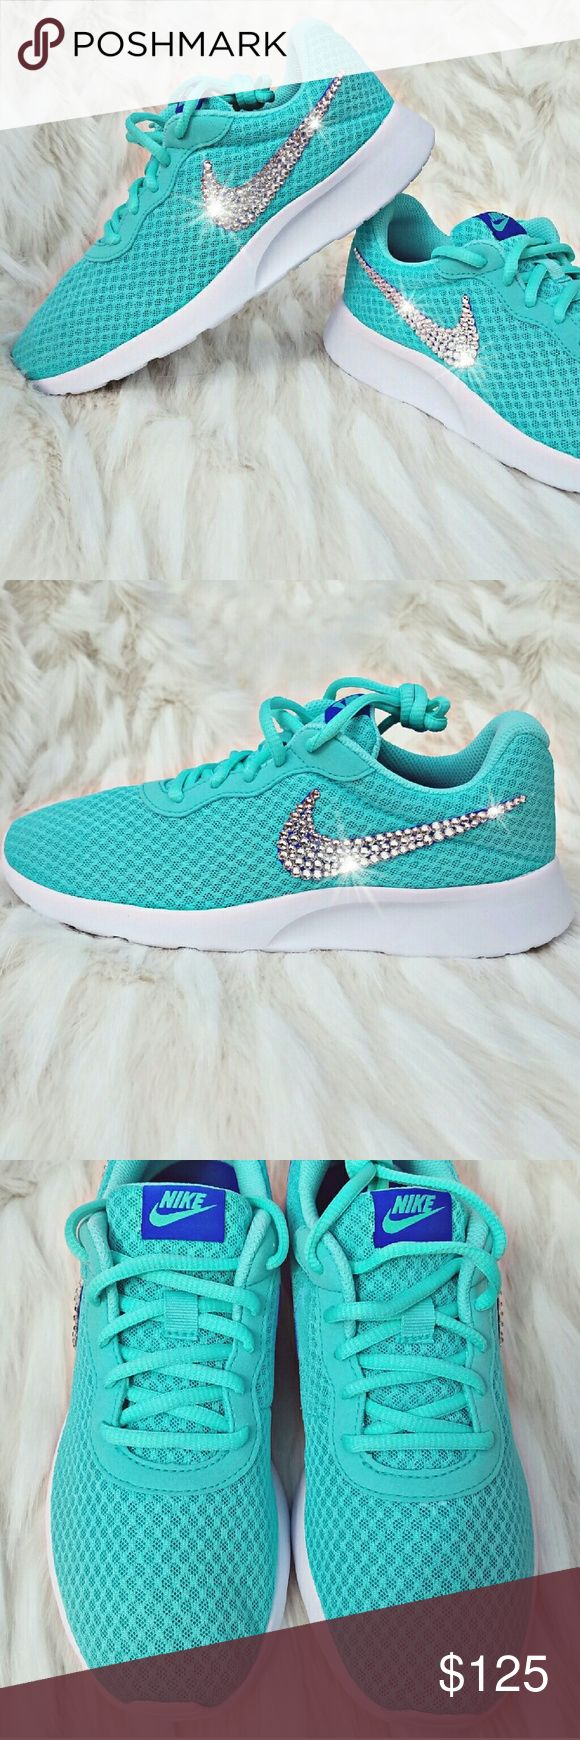 Swarovski Crystal Bling Nike Tanjun - Turquoise Nike Tanjun Color: Hyper Turquoise   Embellished with genuine Swarovski XIRIUS Rose 2088 Crystals  Swarovski's newest most revolutionary crystals, the XIRIUS collection takes one step closer to the diamond with extraordinary brilliance & shine  Crystals are applied by hand with specialty industrial-strength adhesive. Embellishment is permanent. Extra crystals are provided just in case  Shoes come in original Nike box Nike Shoes Athletic Shoes